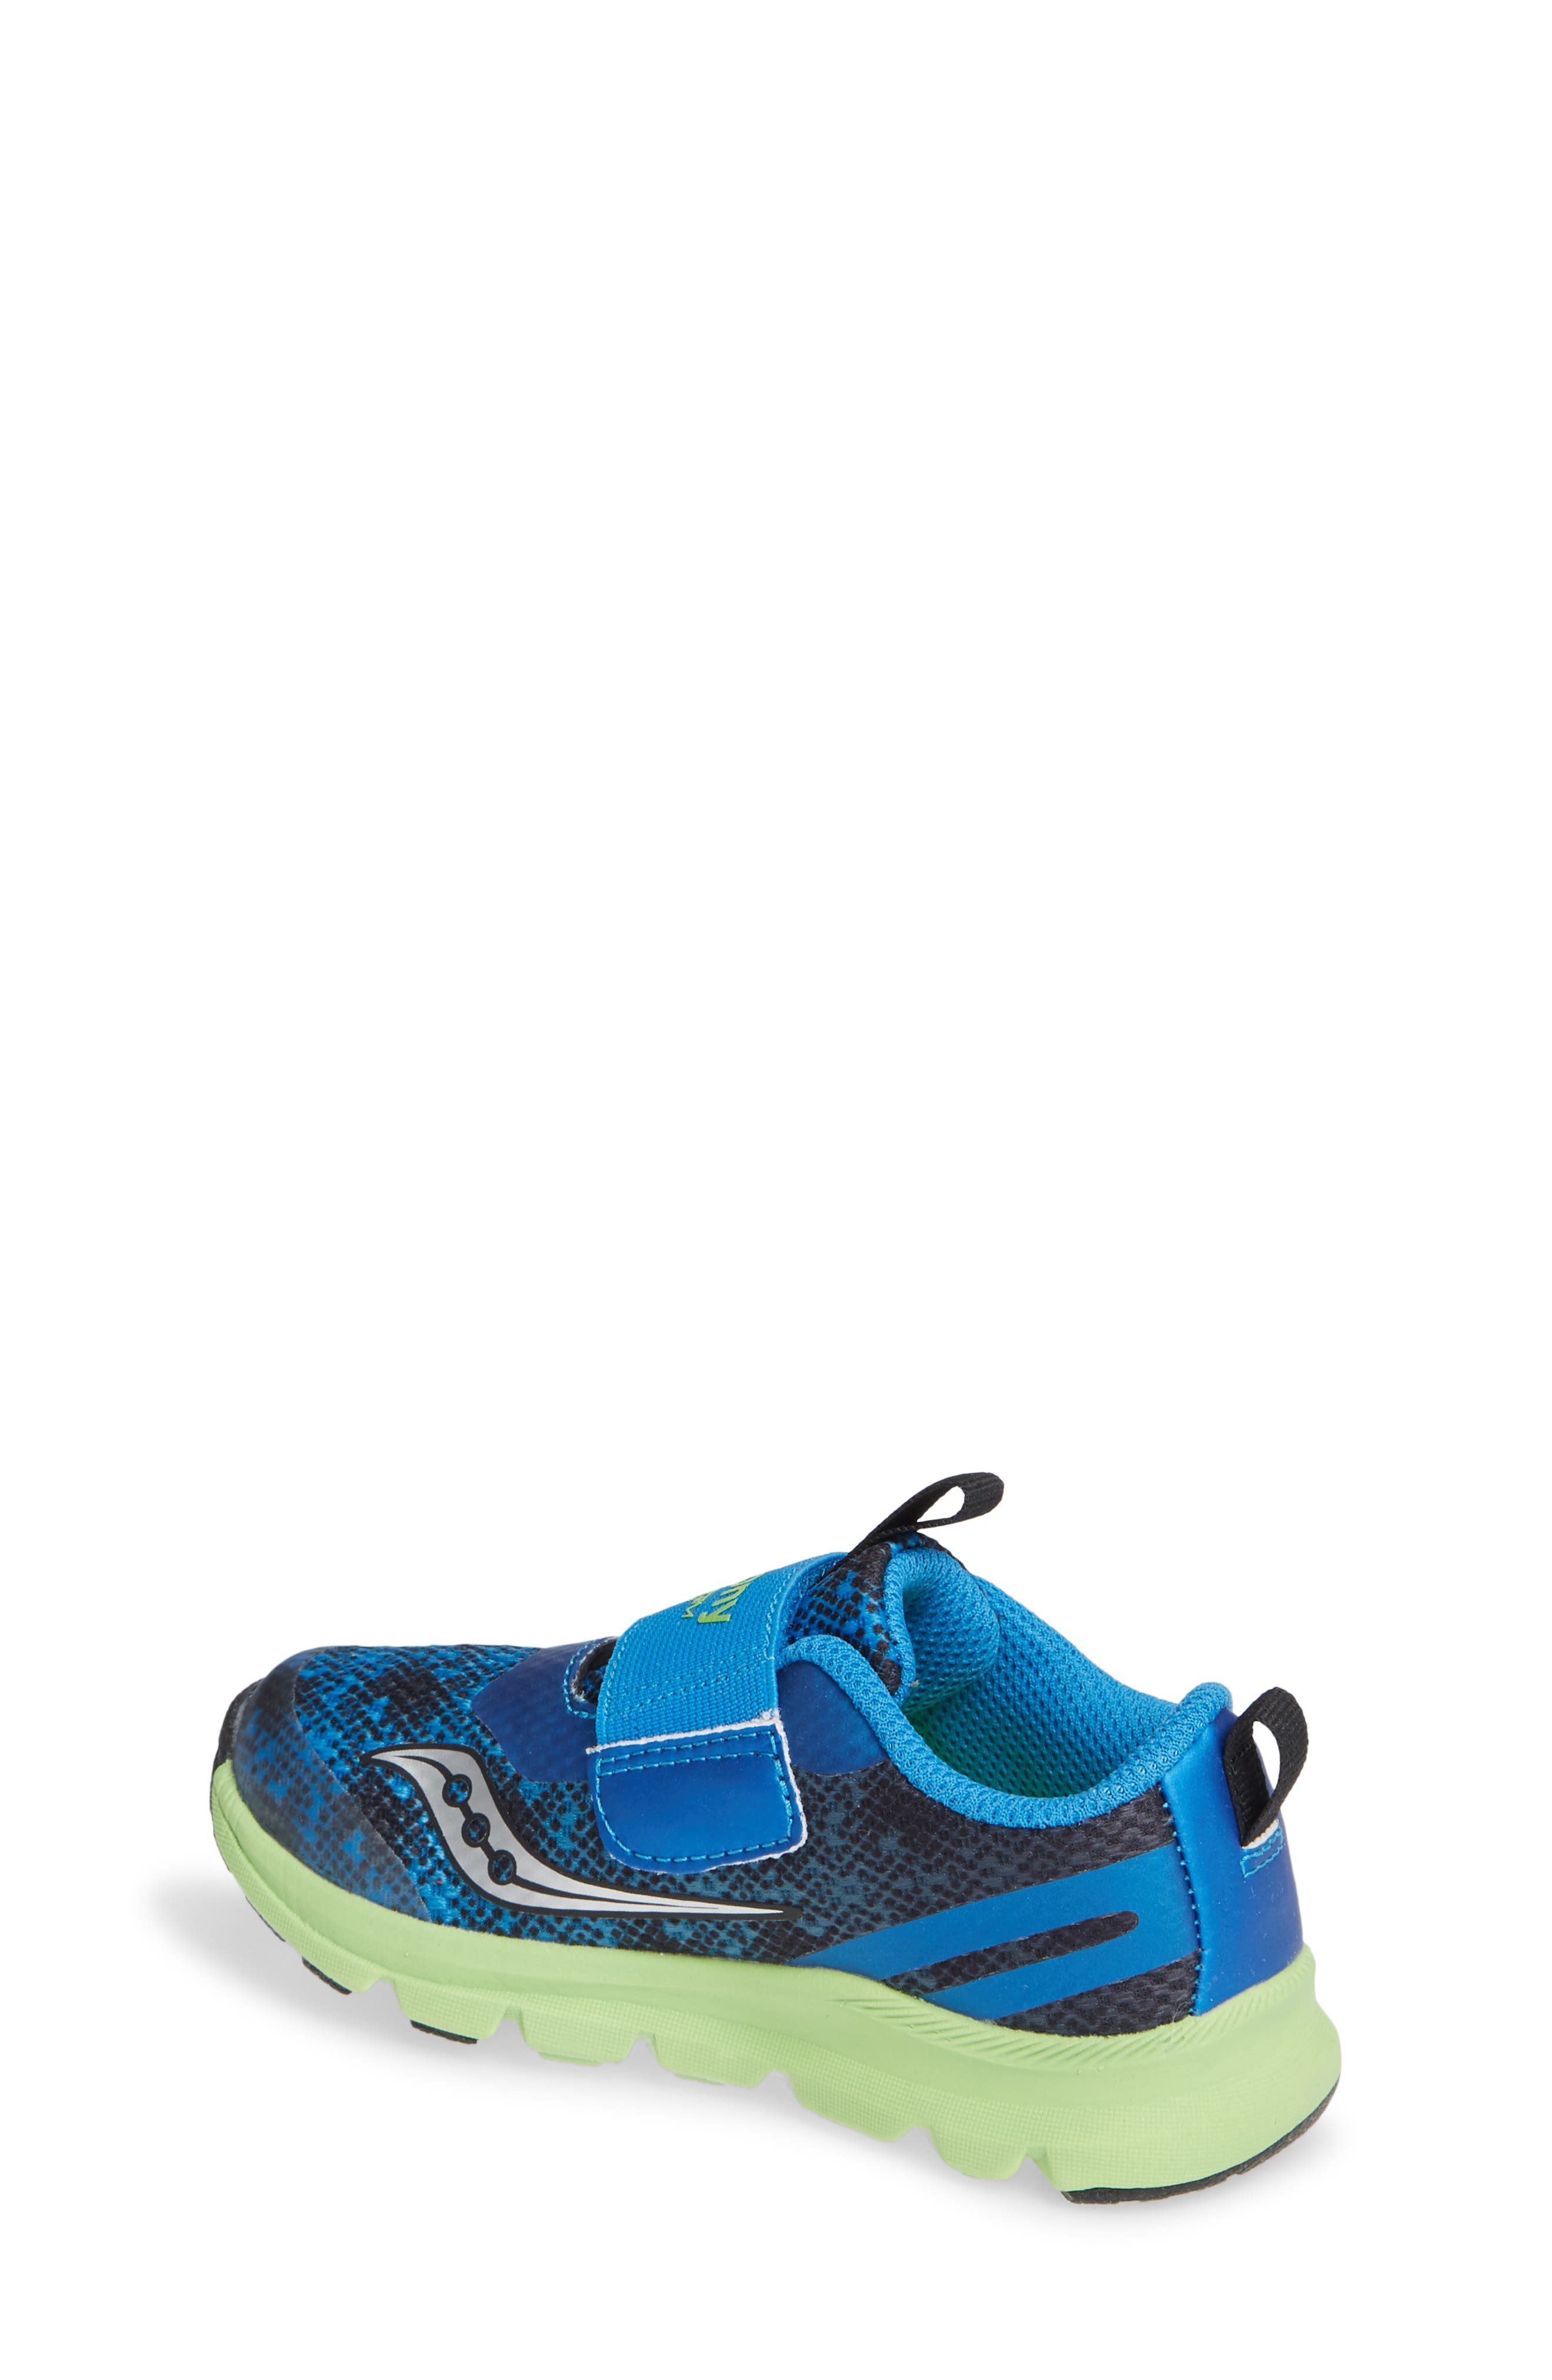 SAUCONY, Baby Liteform Sneaker, Alternate thumbnail 2, color, BLUE/ GREEN